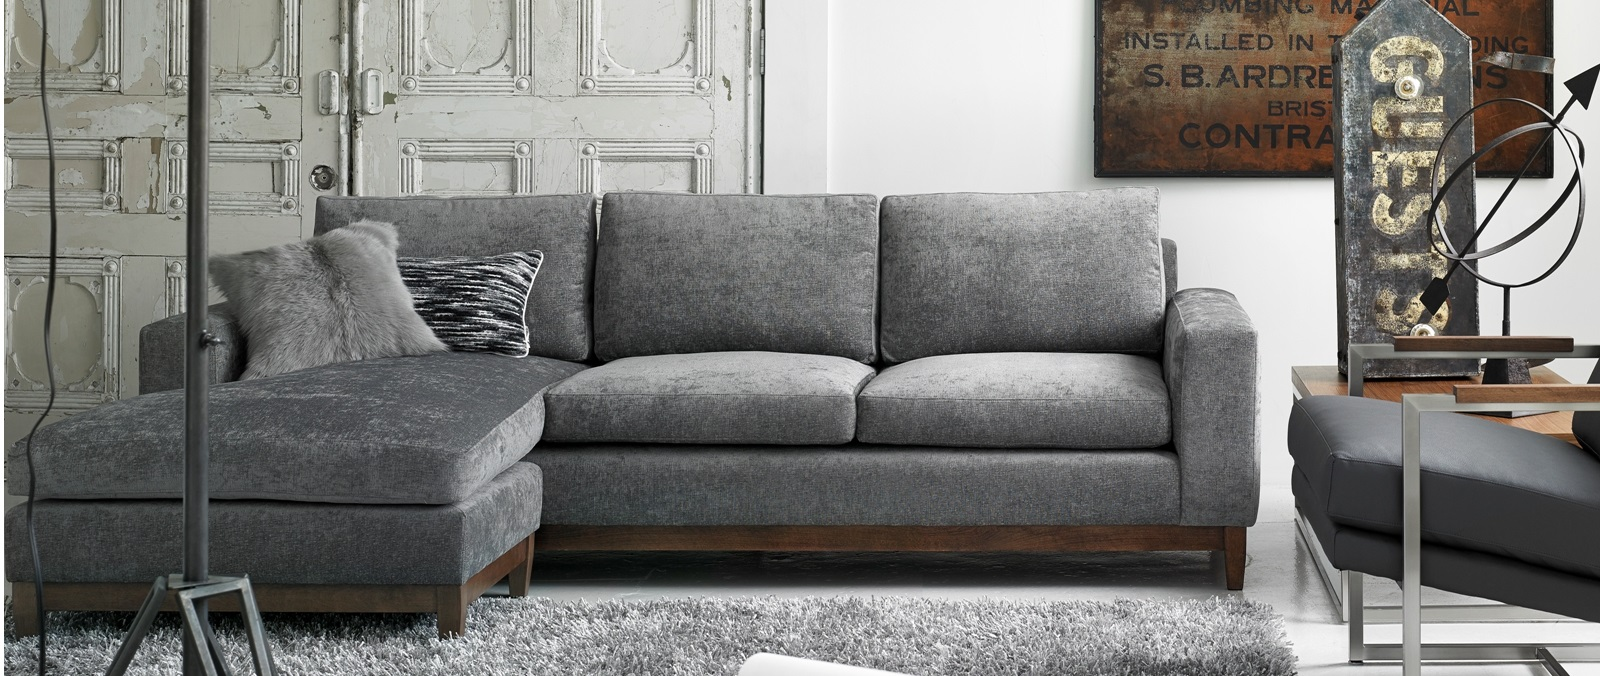 Awe Inspiring Sectional Sofa Ottawa 10 Inspirations Kijiji Ottawa Andrewgaddart Wooden Chair Designs For Living Room Andrewgaddartcom